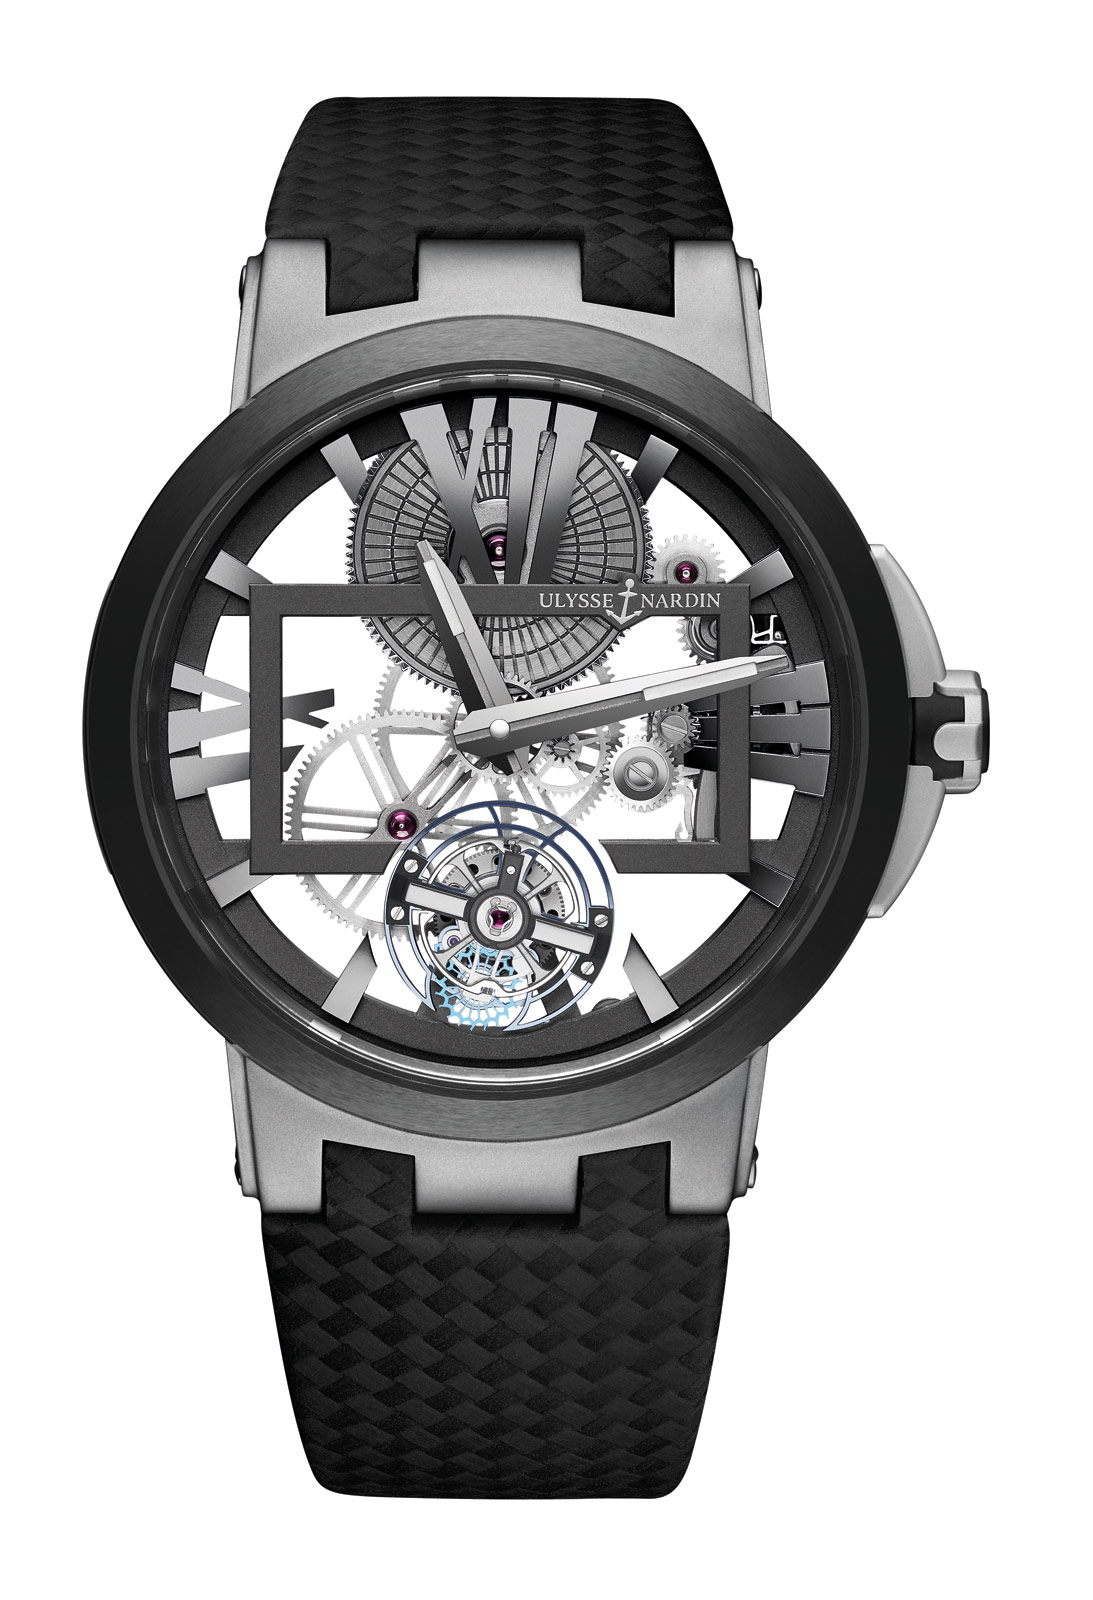 Ulysse Nardin's Executive Skeleton Tourbillon; Continuing To Redefine The Timepiece 4